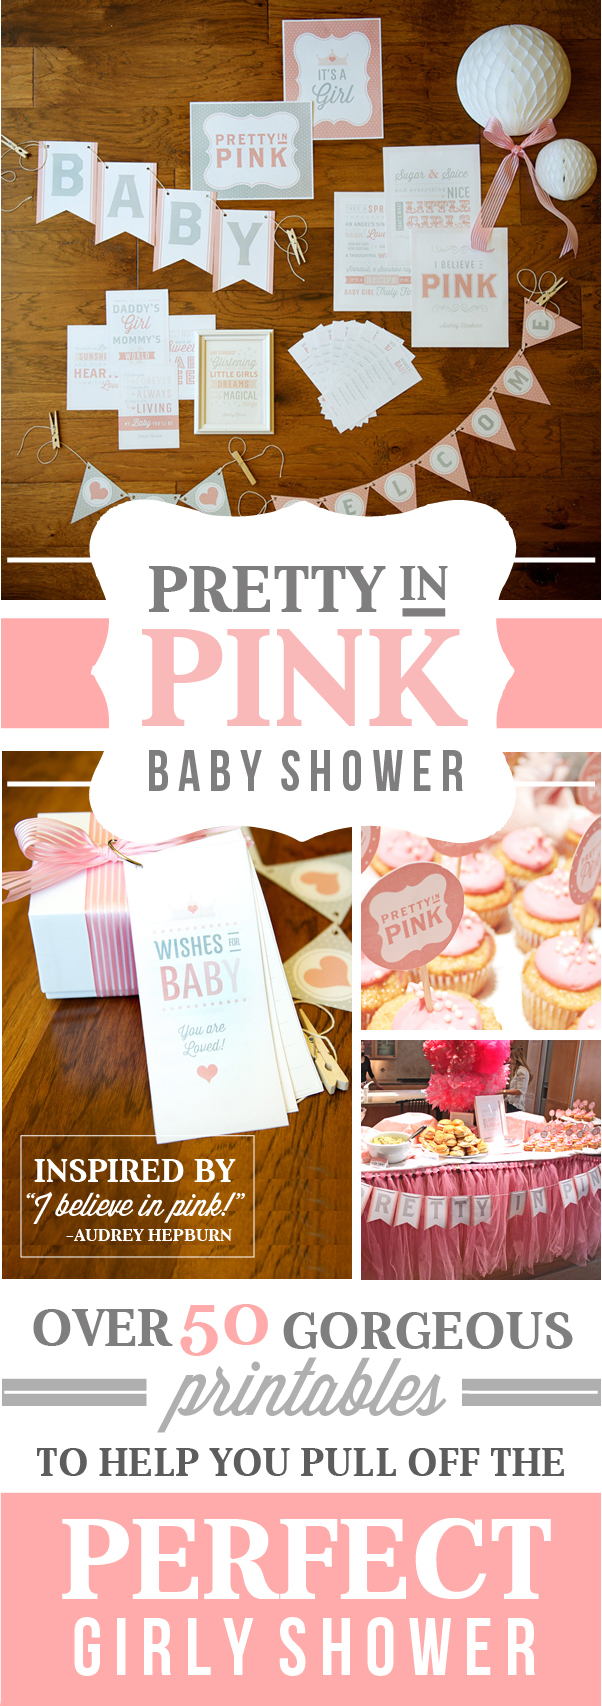 Pretty in Pink Baby Shower with printables - Perfect for a girl